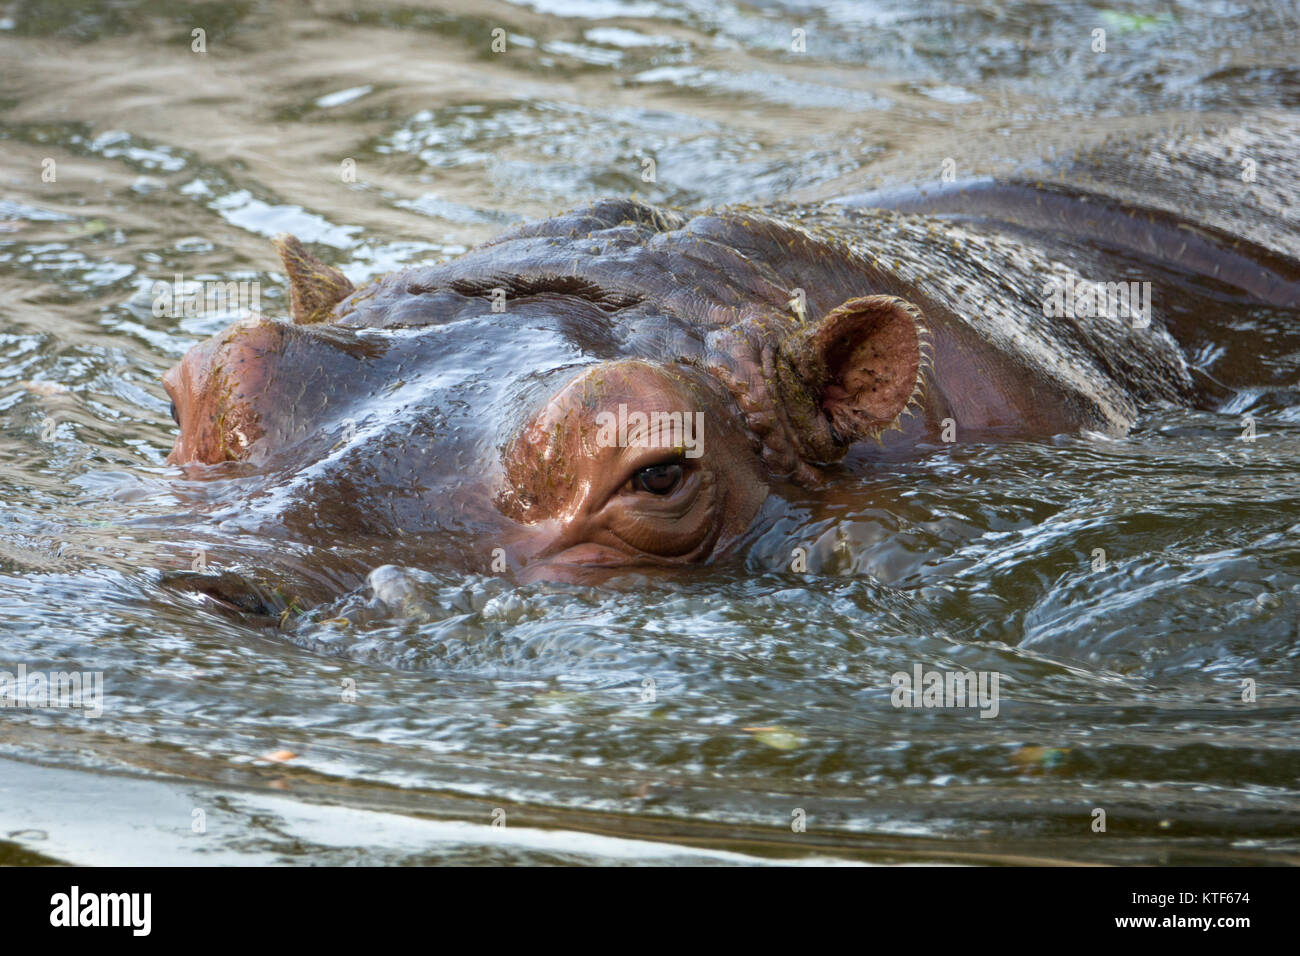 Hippopotamus (Hippo) bathing in water closeup view - Stock Image